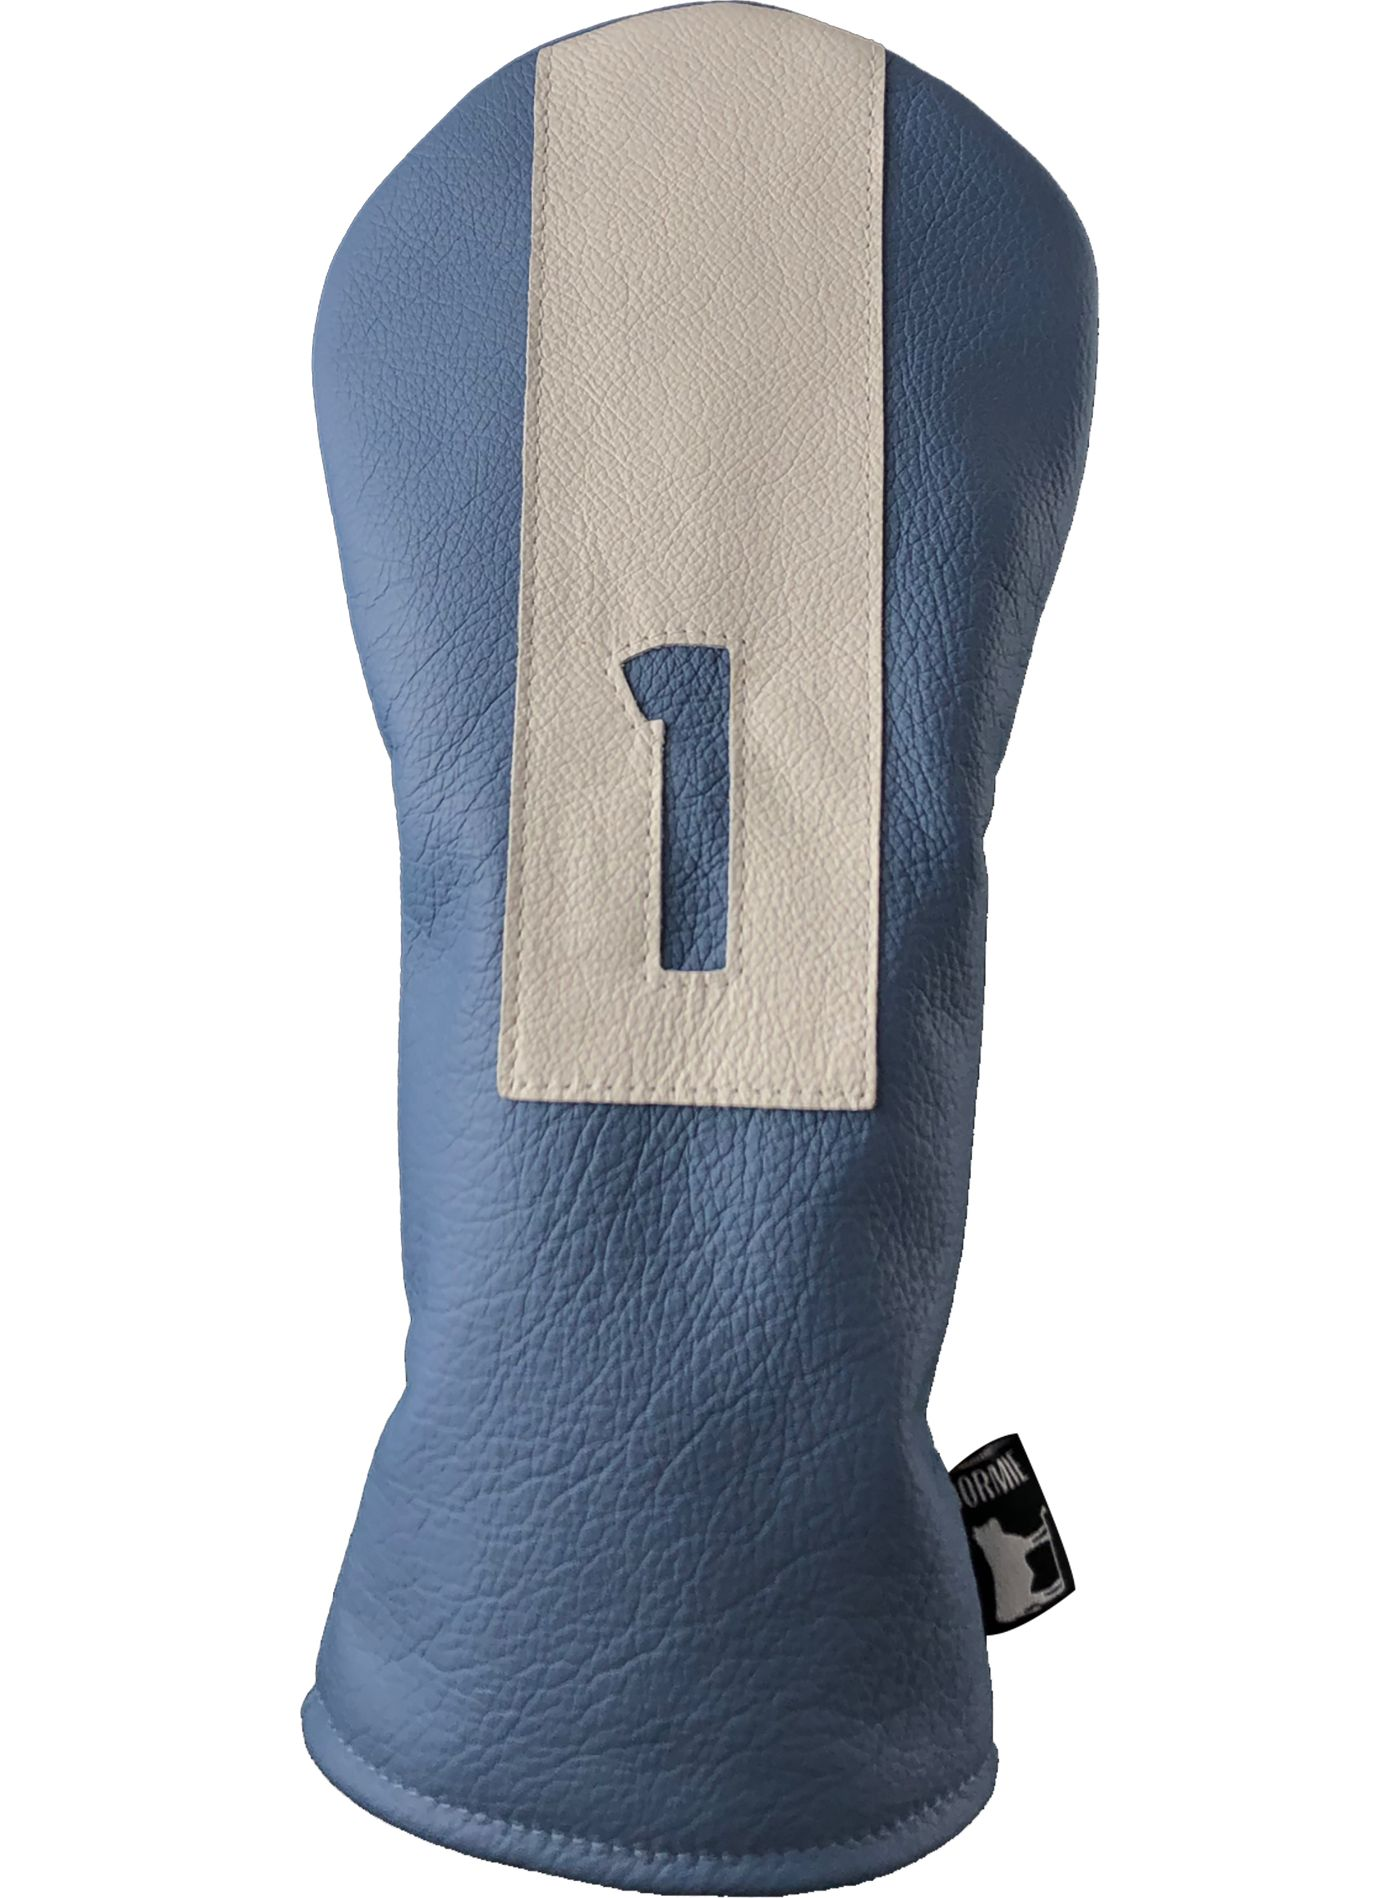 Dormie Workshop Mach 1 Driver Headcover